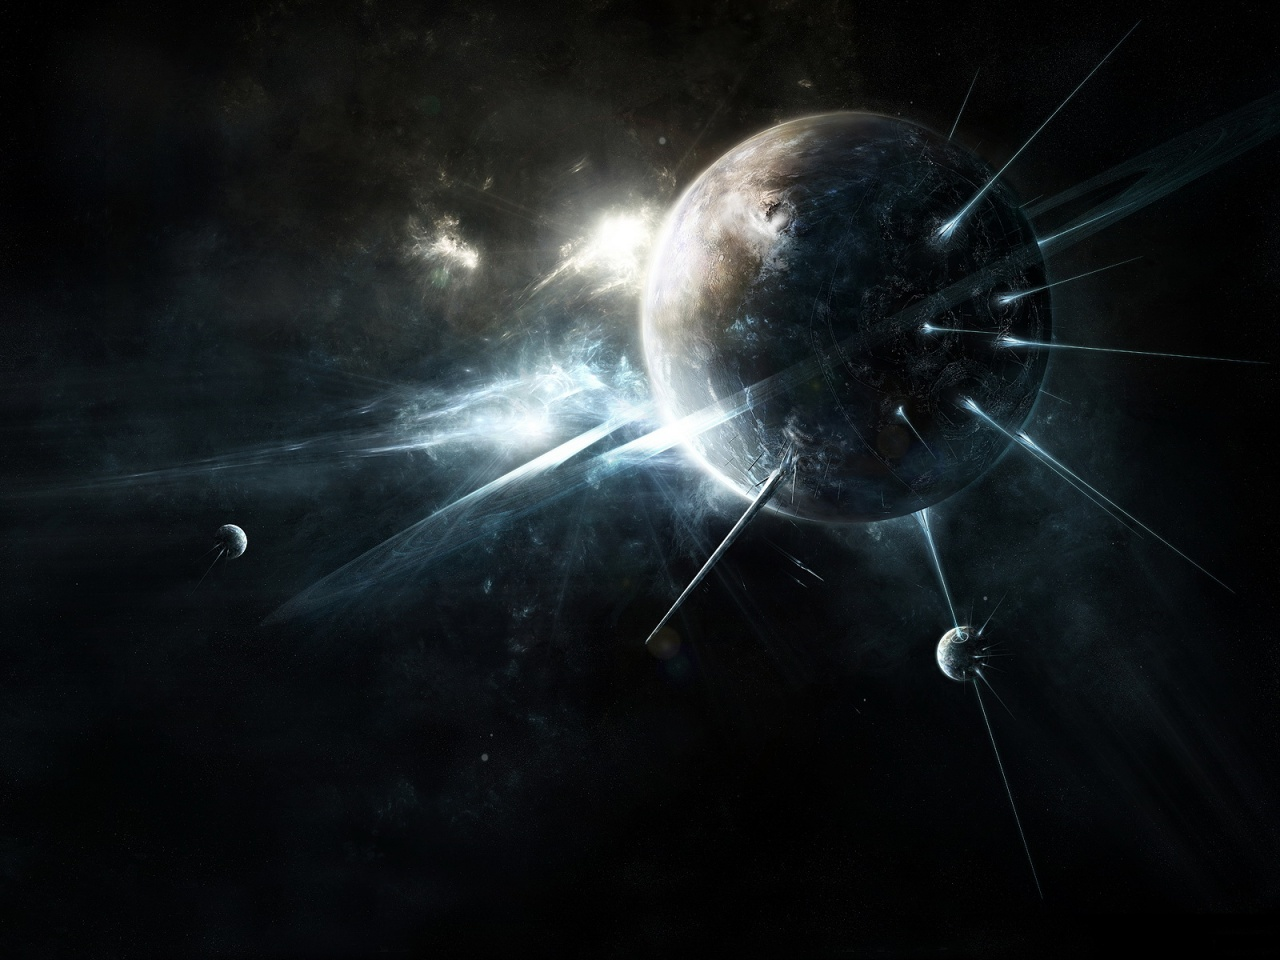 Dark Space Abstract Wallpapers HD Wallpapers 1280x960